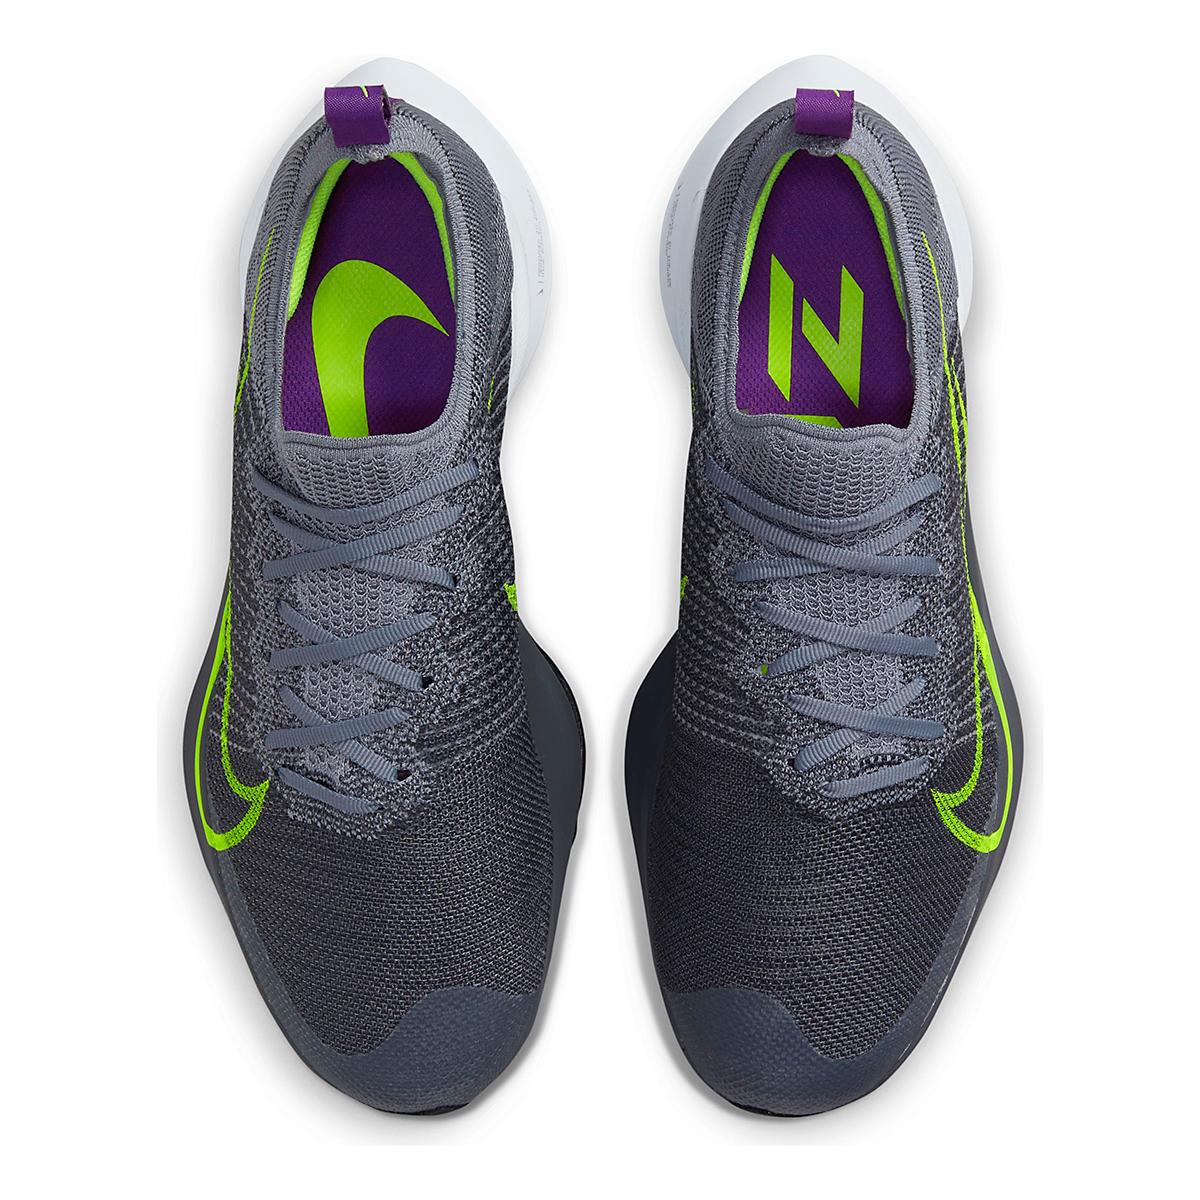 Men's Nike Air Zoom Tempo Next% Running Shoe - Color: Perticle Grey/Volt Grey/Wild Berry - Size: 10 - Width: Regular, Perticle Grey/Volt Grey/Wild Berry, large, image 5